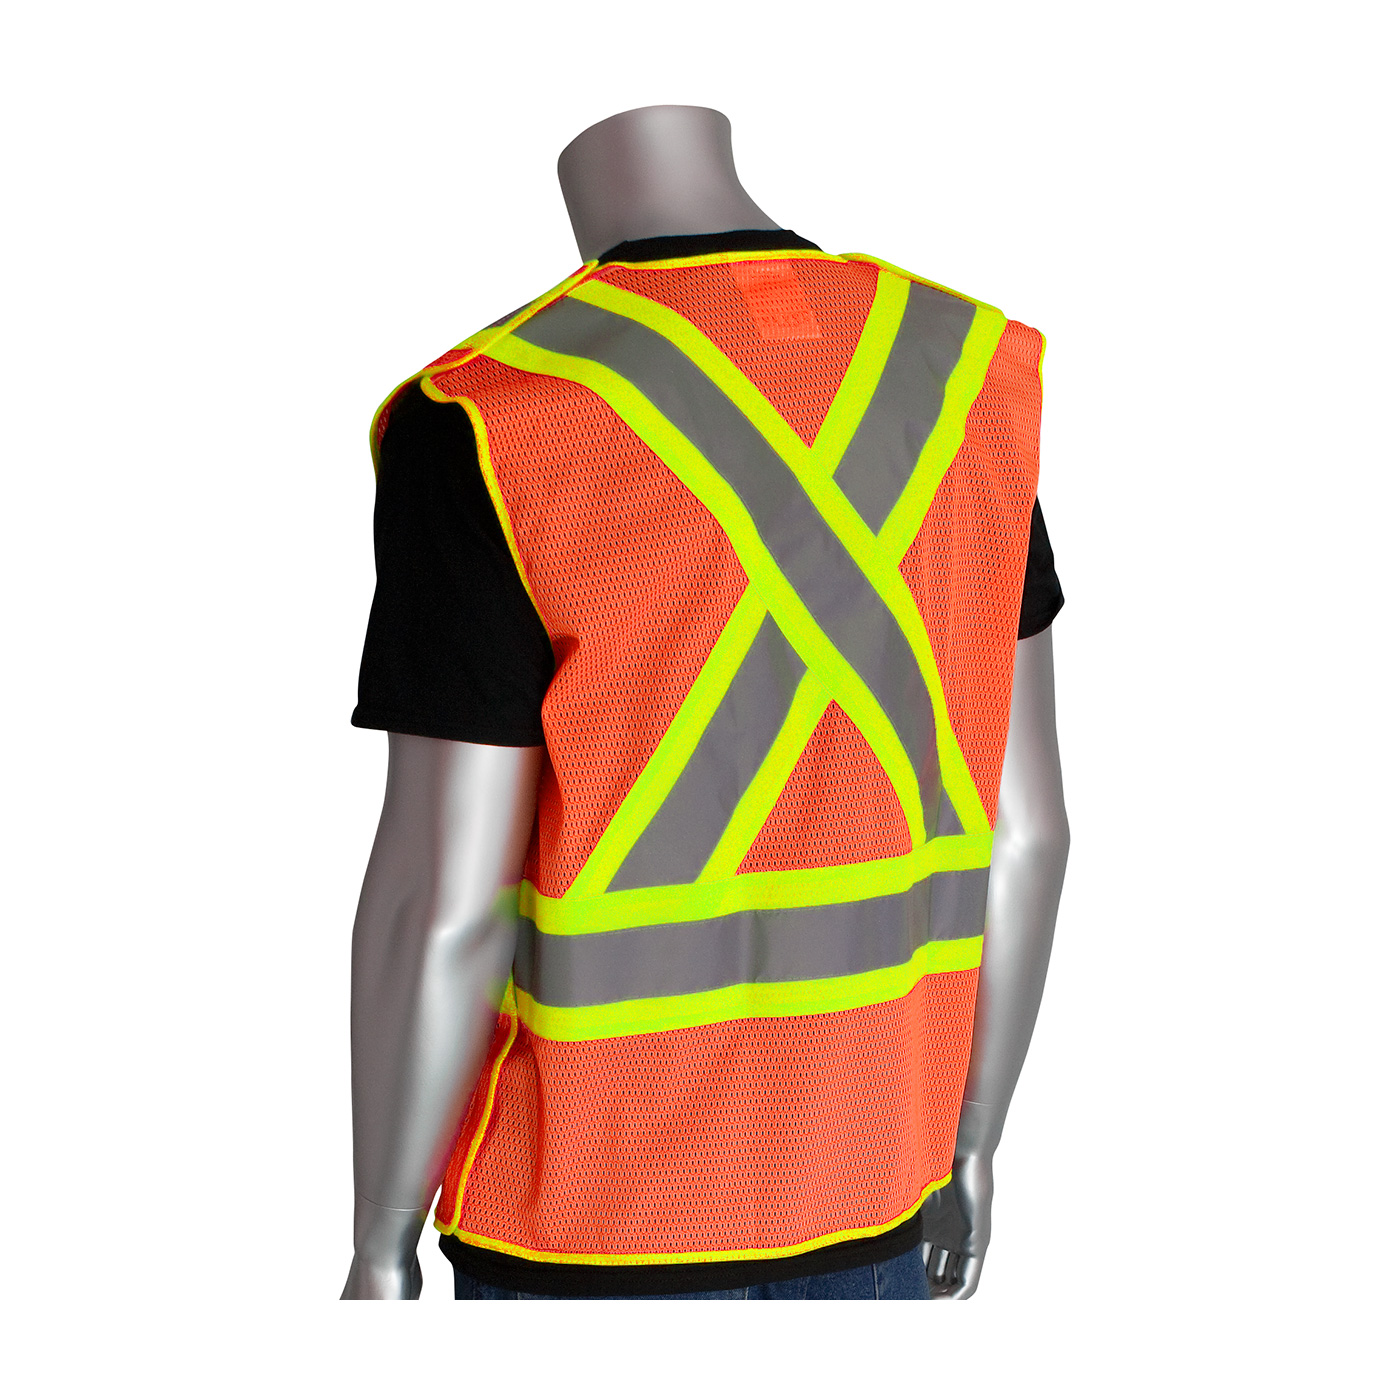 PIP® ANSI Type R Class 2 and CAN/CSA Z96 Two-Tone X-Back Breakaway Mesh Vest #302-0211OR